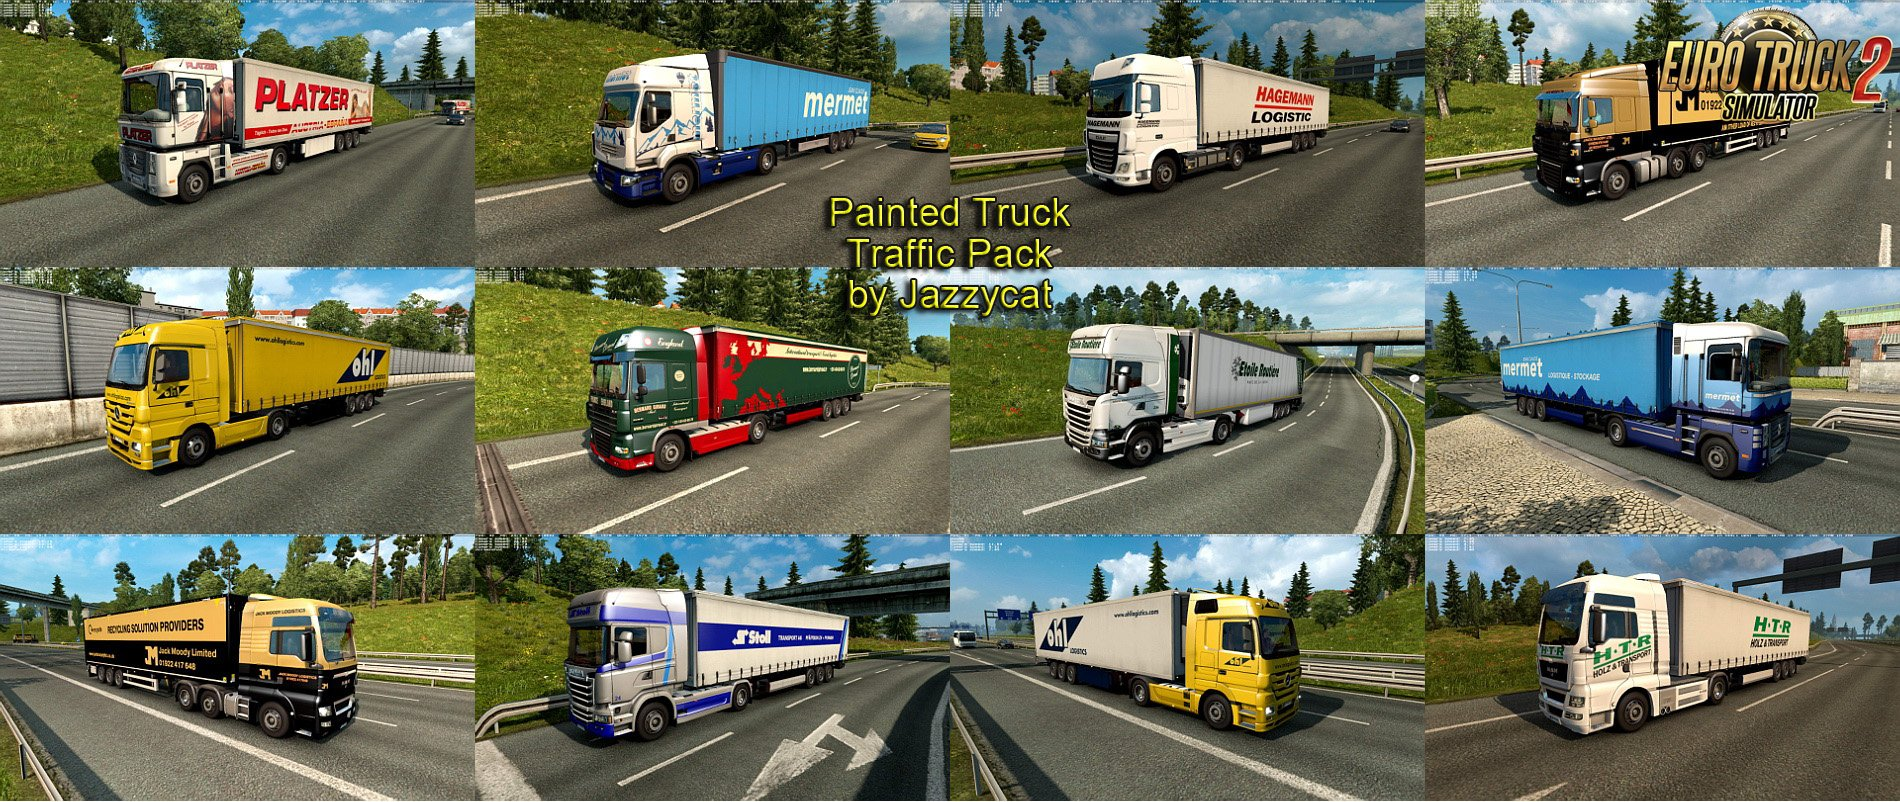 Painted Truck Traffic Pack v4.9 by Jazzycat